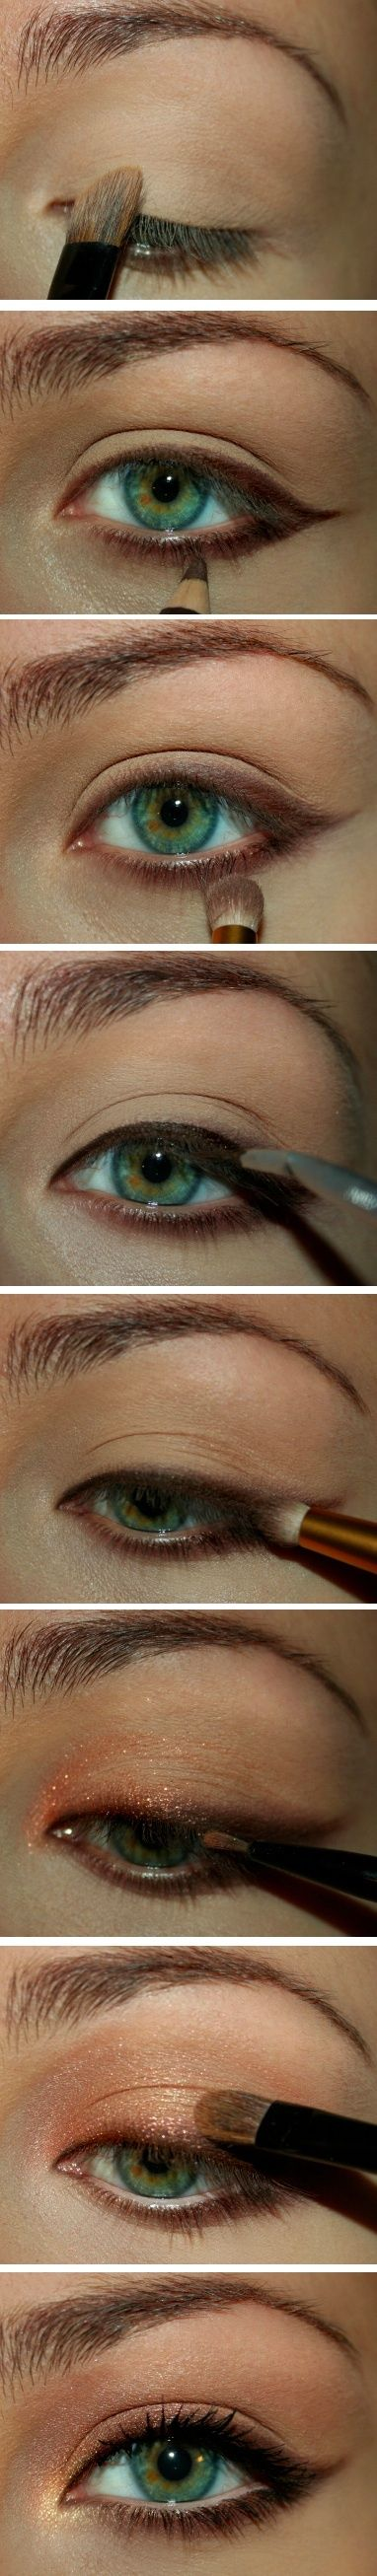 7 Awesome Eye Make-up Tricks.